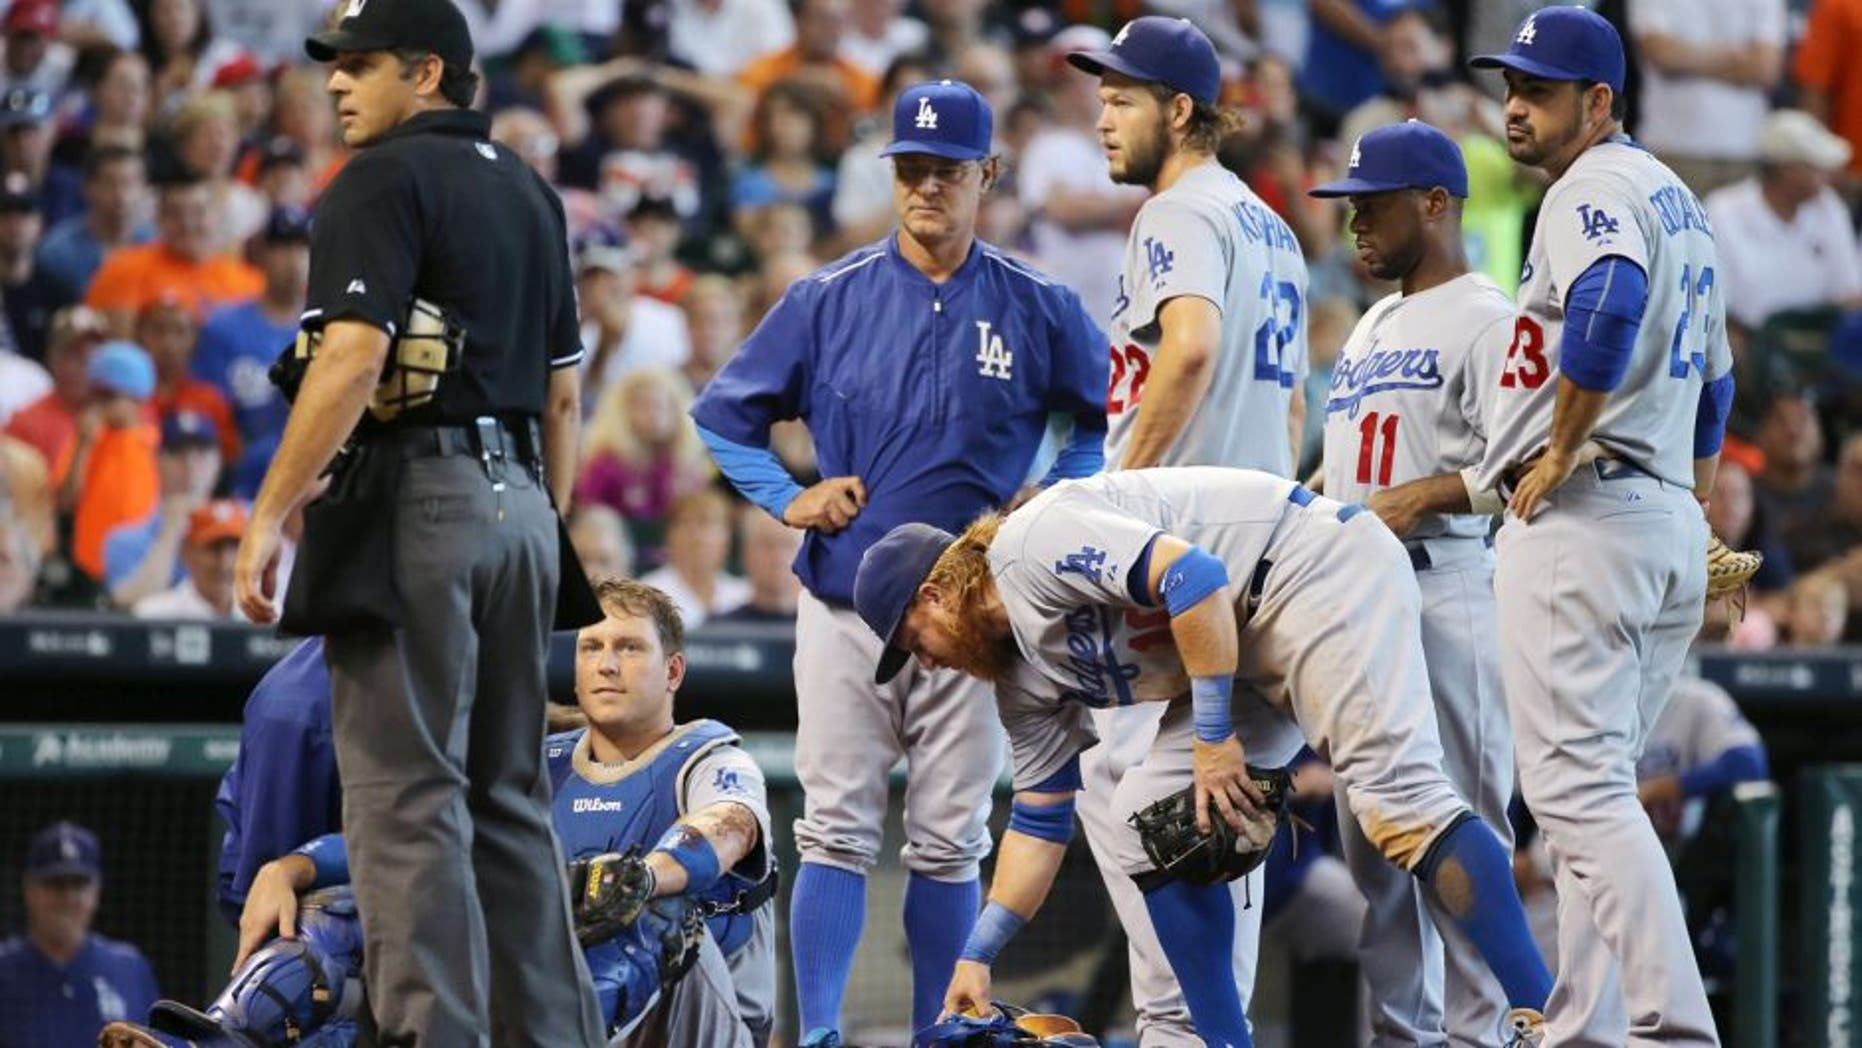 HOUSTON, TX - AUGUST 23: Catcher A.J. Ellis #17 of the Los Angeles Dodgers sits on the ground after a tough slide by Carlos Gomez #30 of the Houston Astros in the sixth inning during their game at Minute Maid Park on August 23, 2015 in Houston, Texas. (Photo by Scott Halleran/Getty Images)